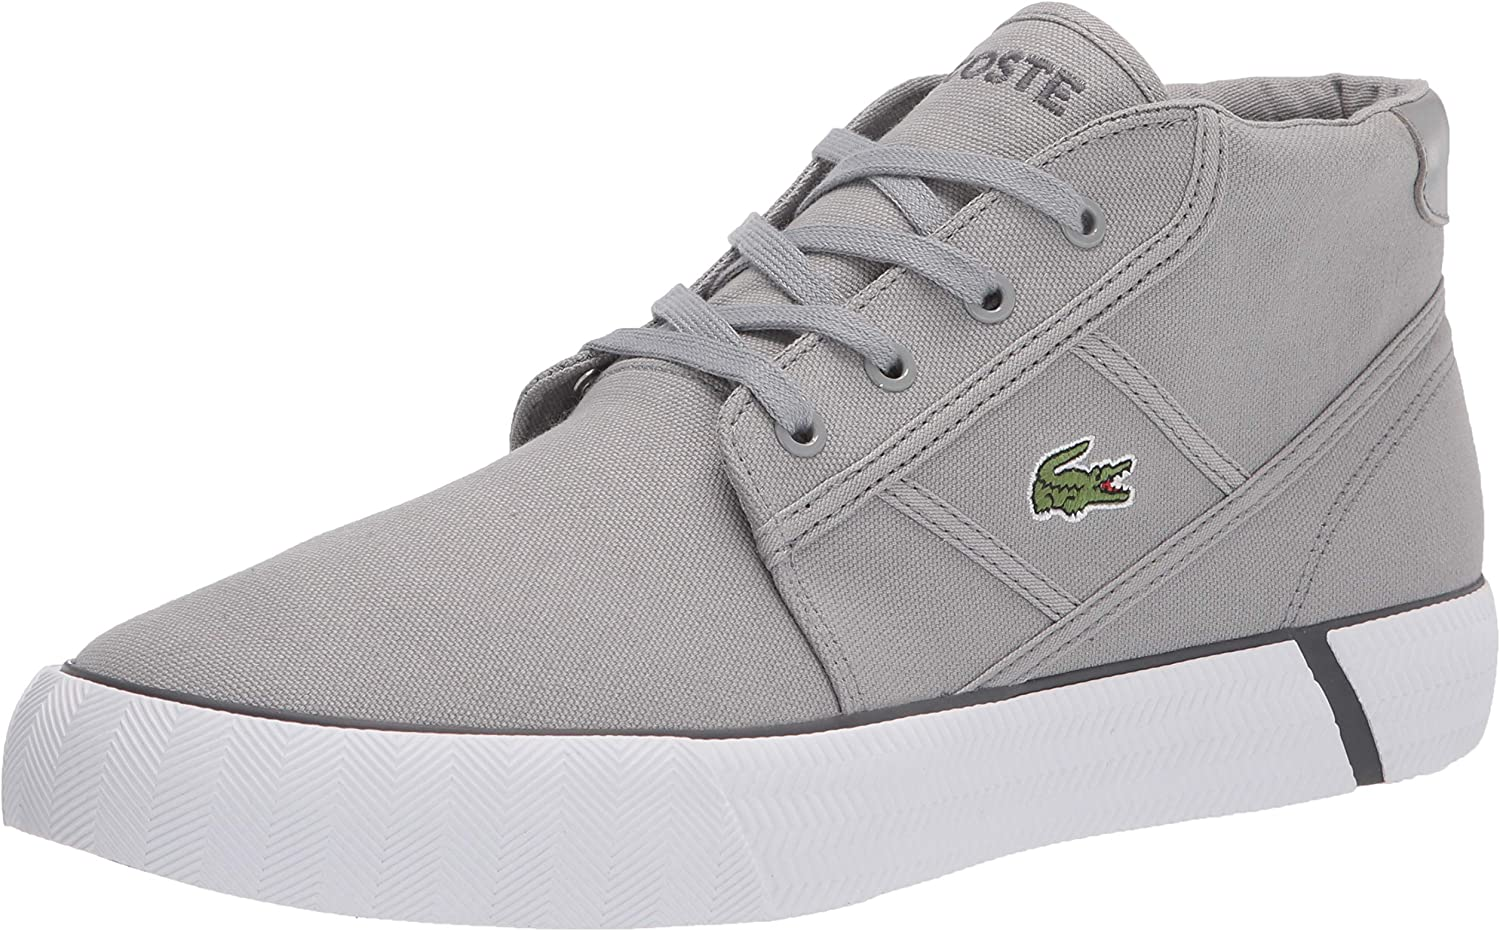 Large-scale sale Lacoste Store Men's Gripshot Chukka Sneaker